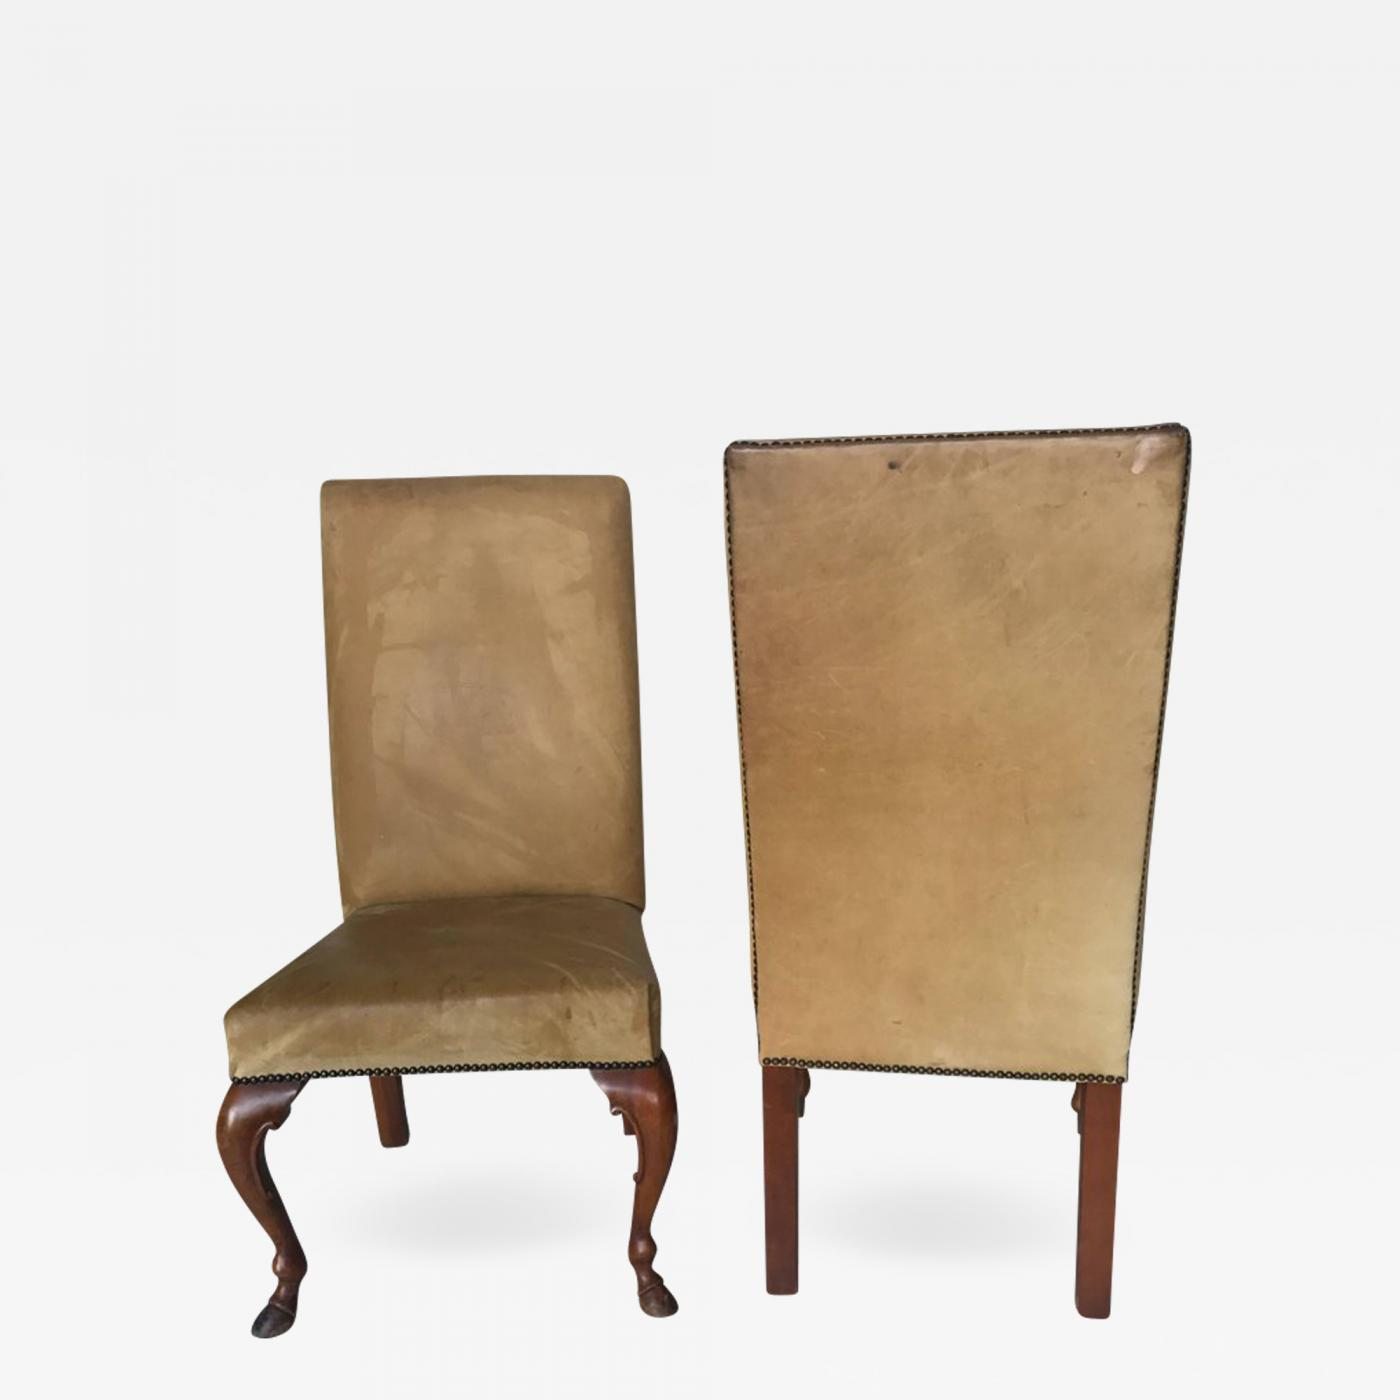 ralph lauren chair ergonomic lower back support pair of chairs in leather labelled